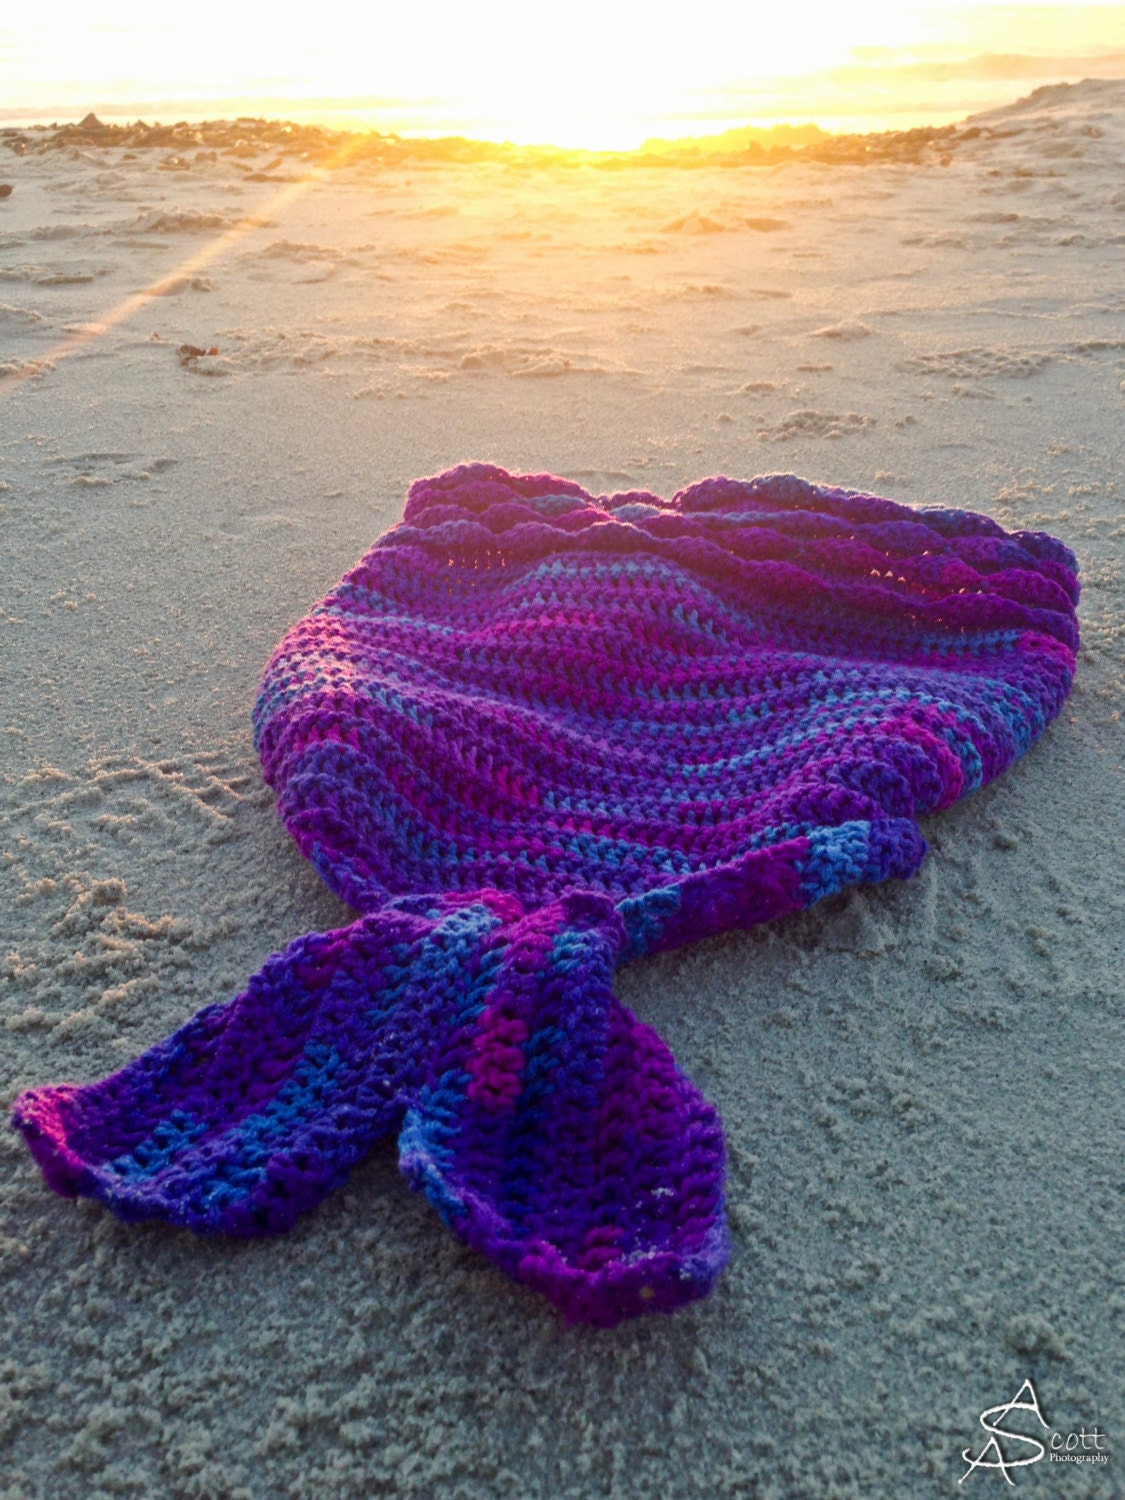 Crochet Patterns Mermaid Blanket : Mermaid Blanket Crochet Pattern by RAKJpatterns on Etsy